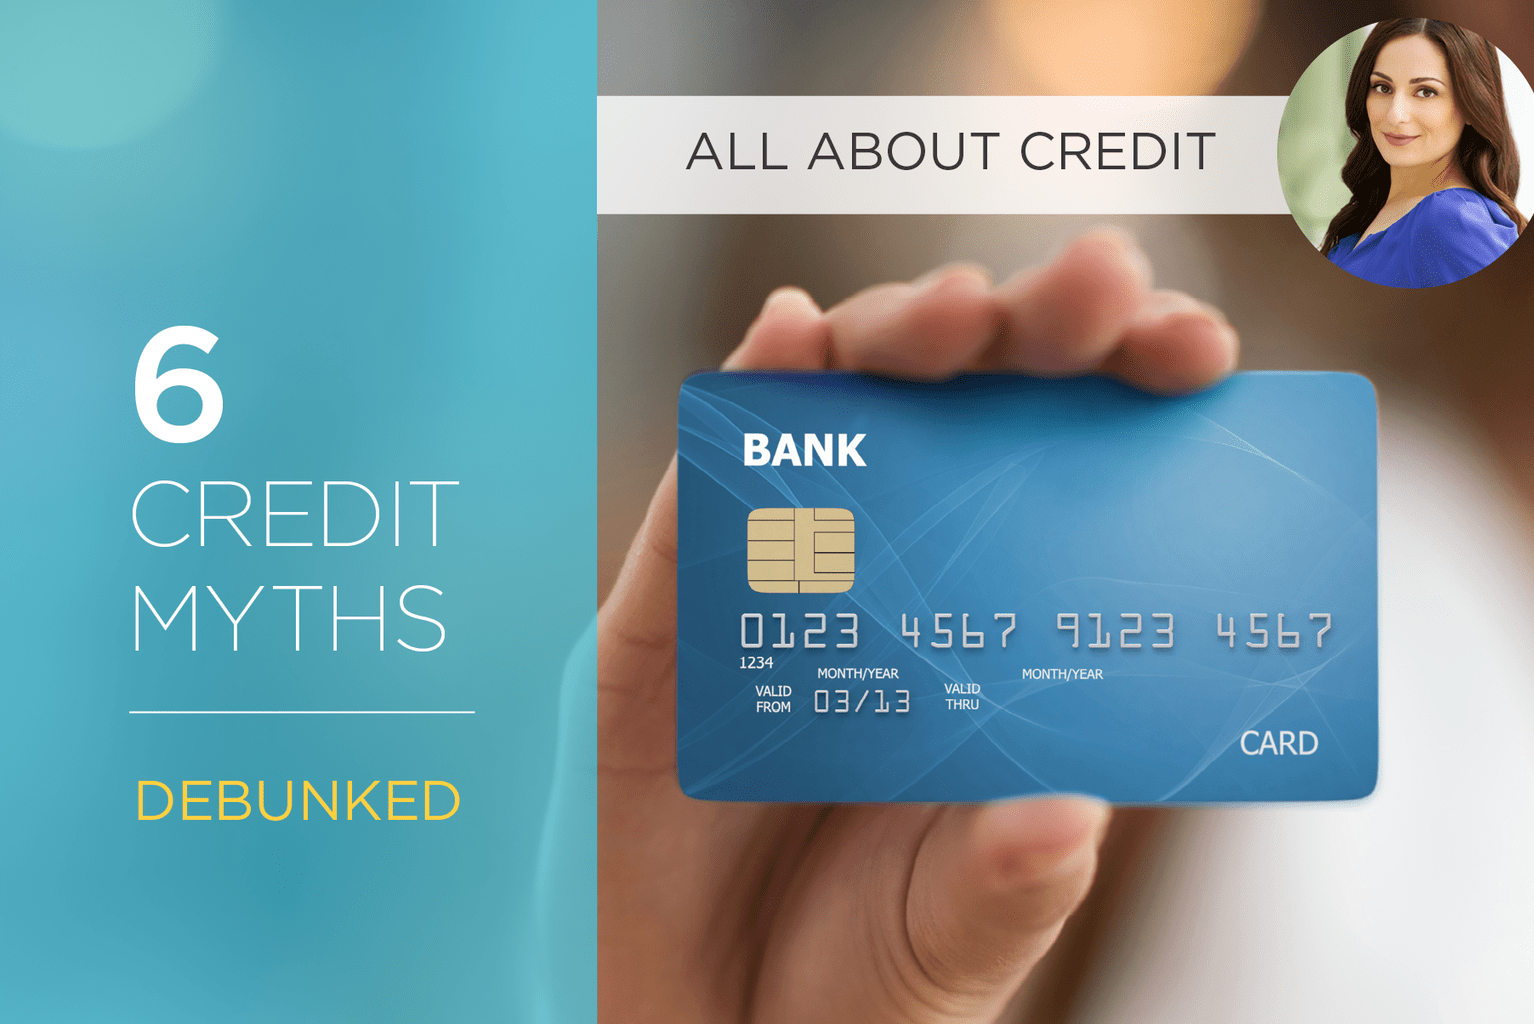 All About Credit Misconceptions From Users On Things